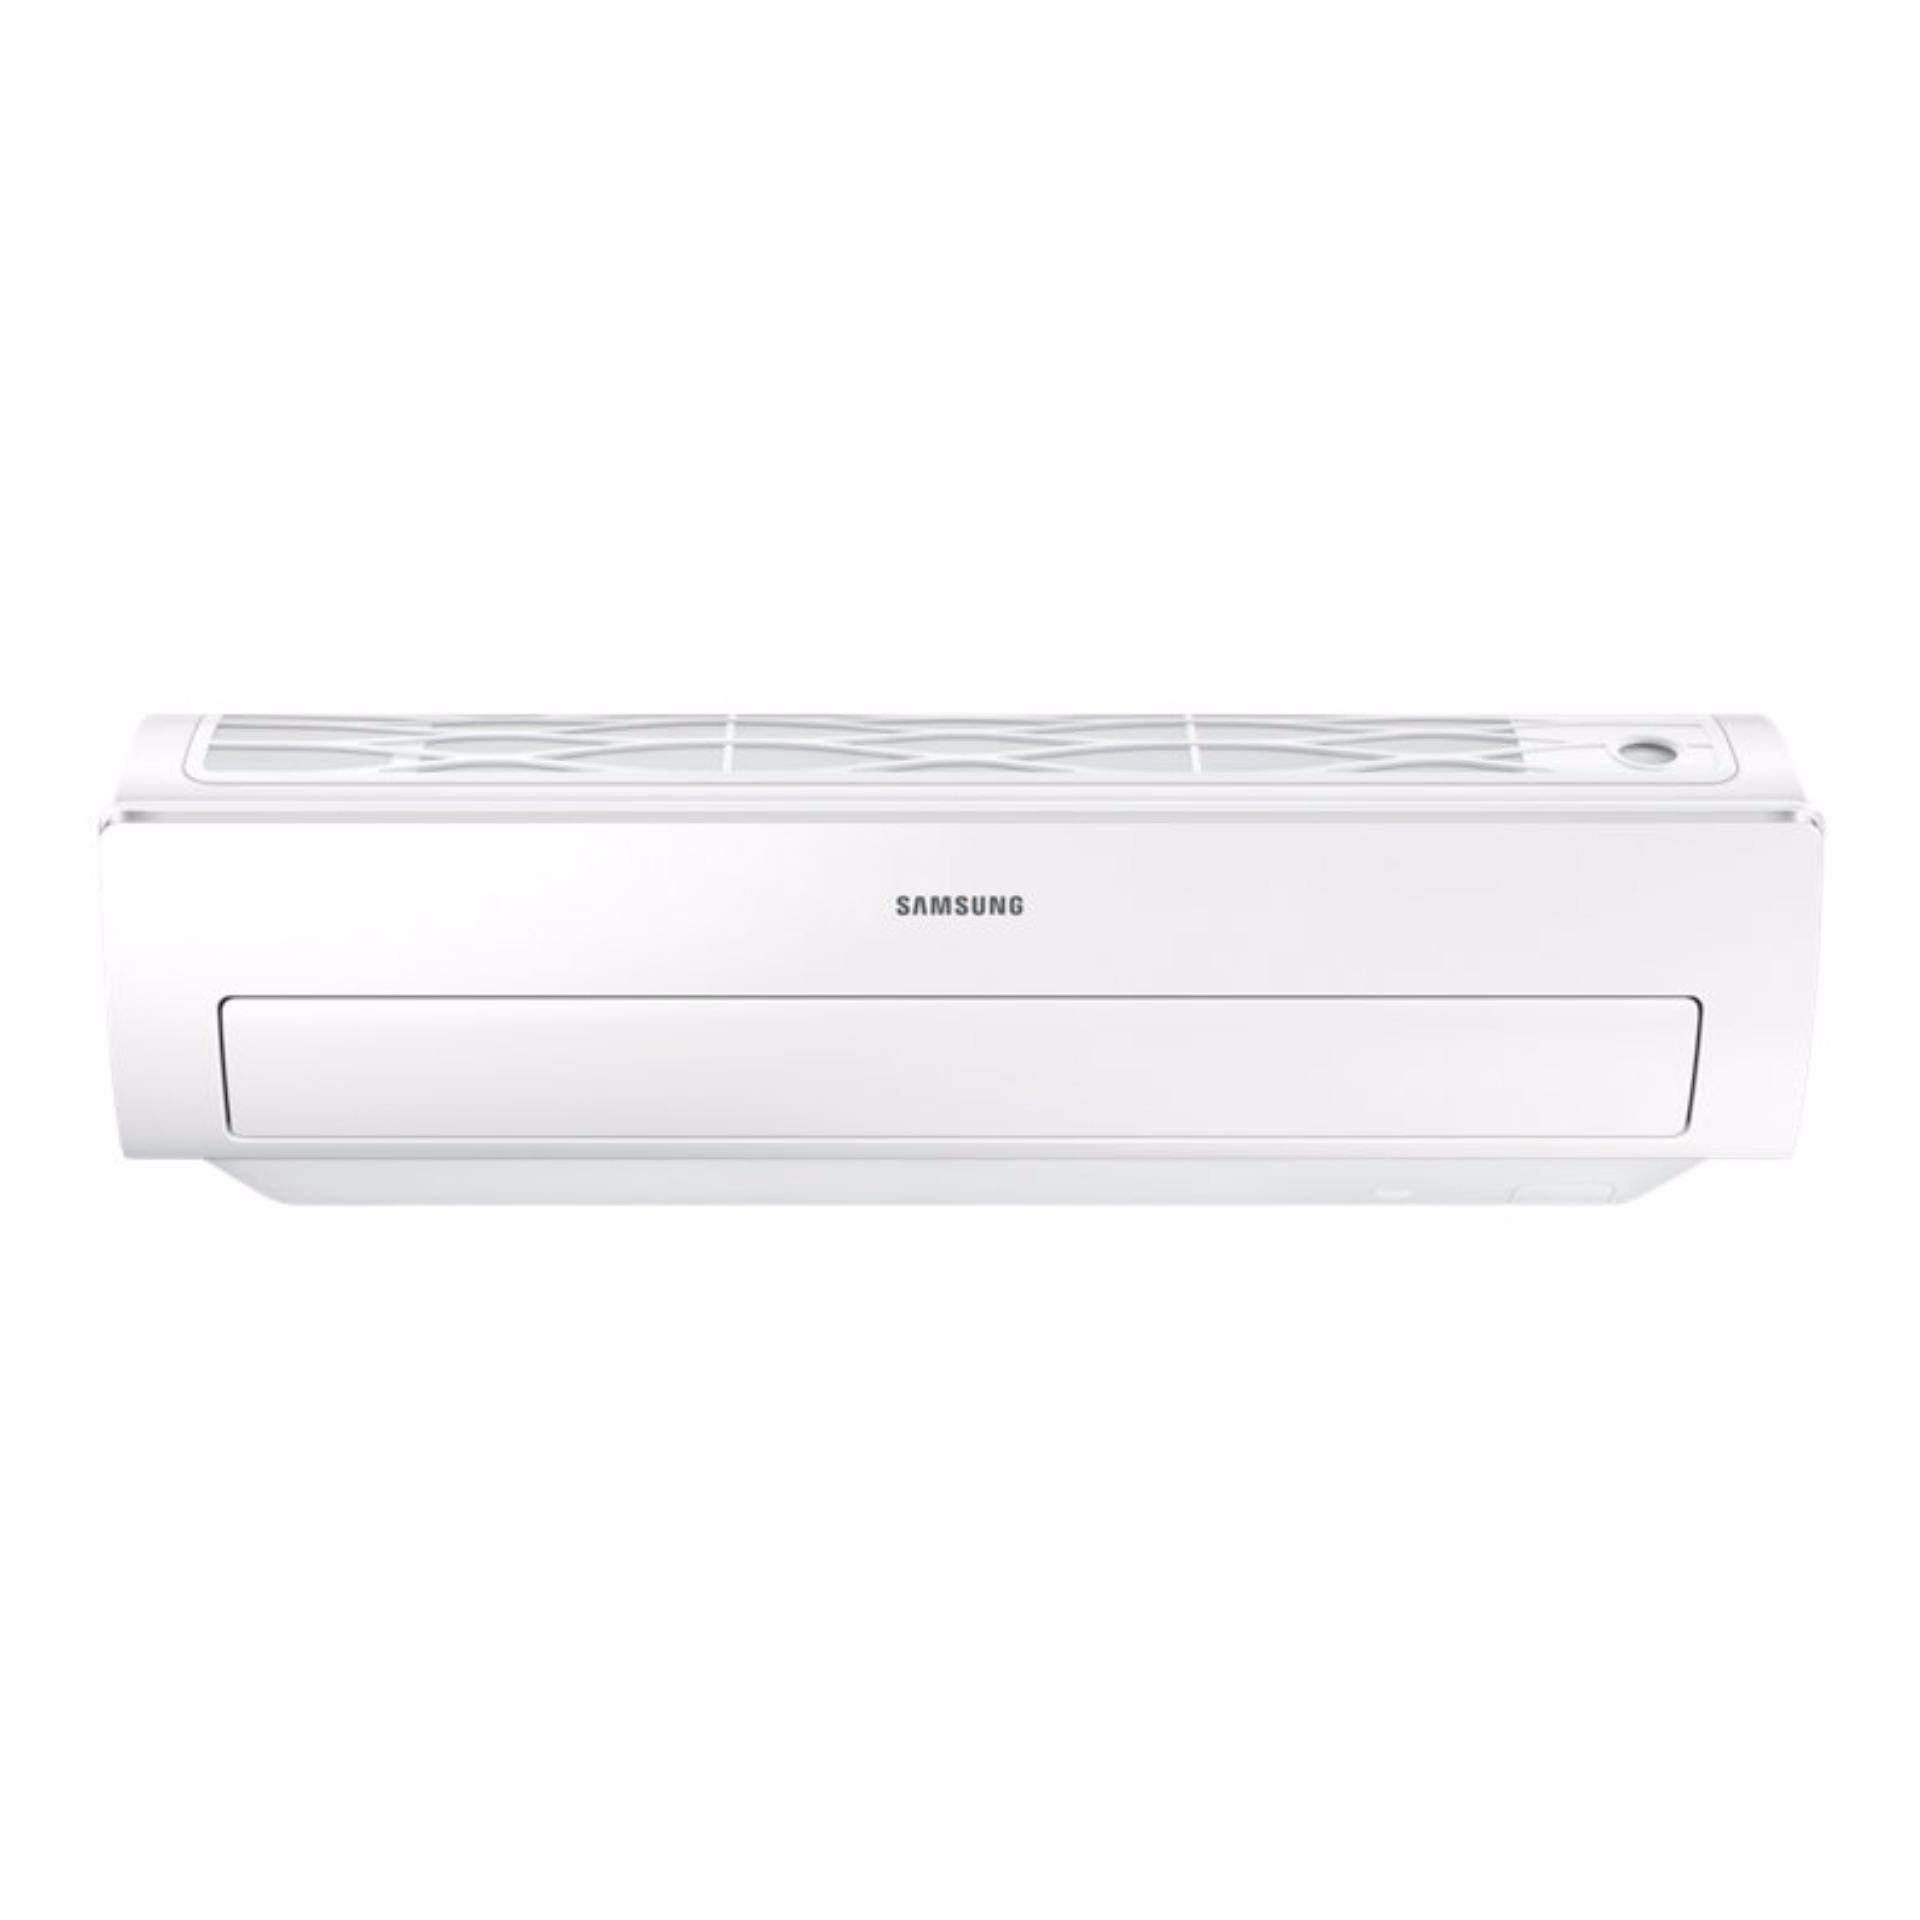 Samsung R410A Non Inverter Deluxe Wall-mount AC with Faster Cooling, 12000BTU/h